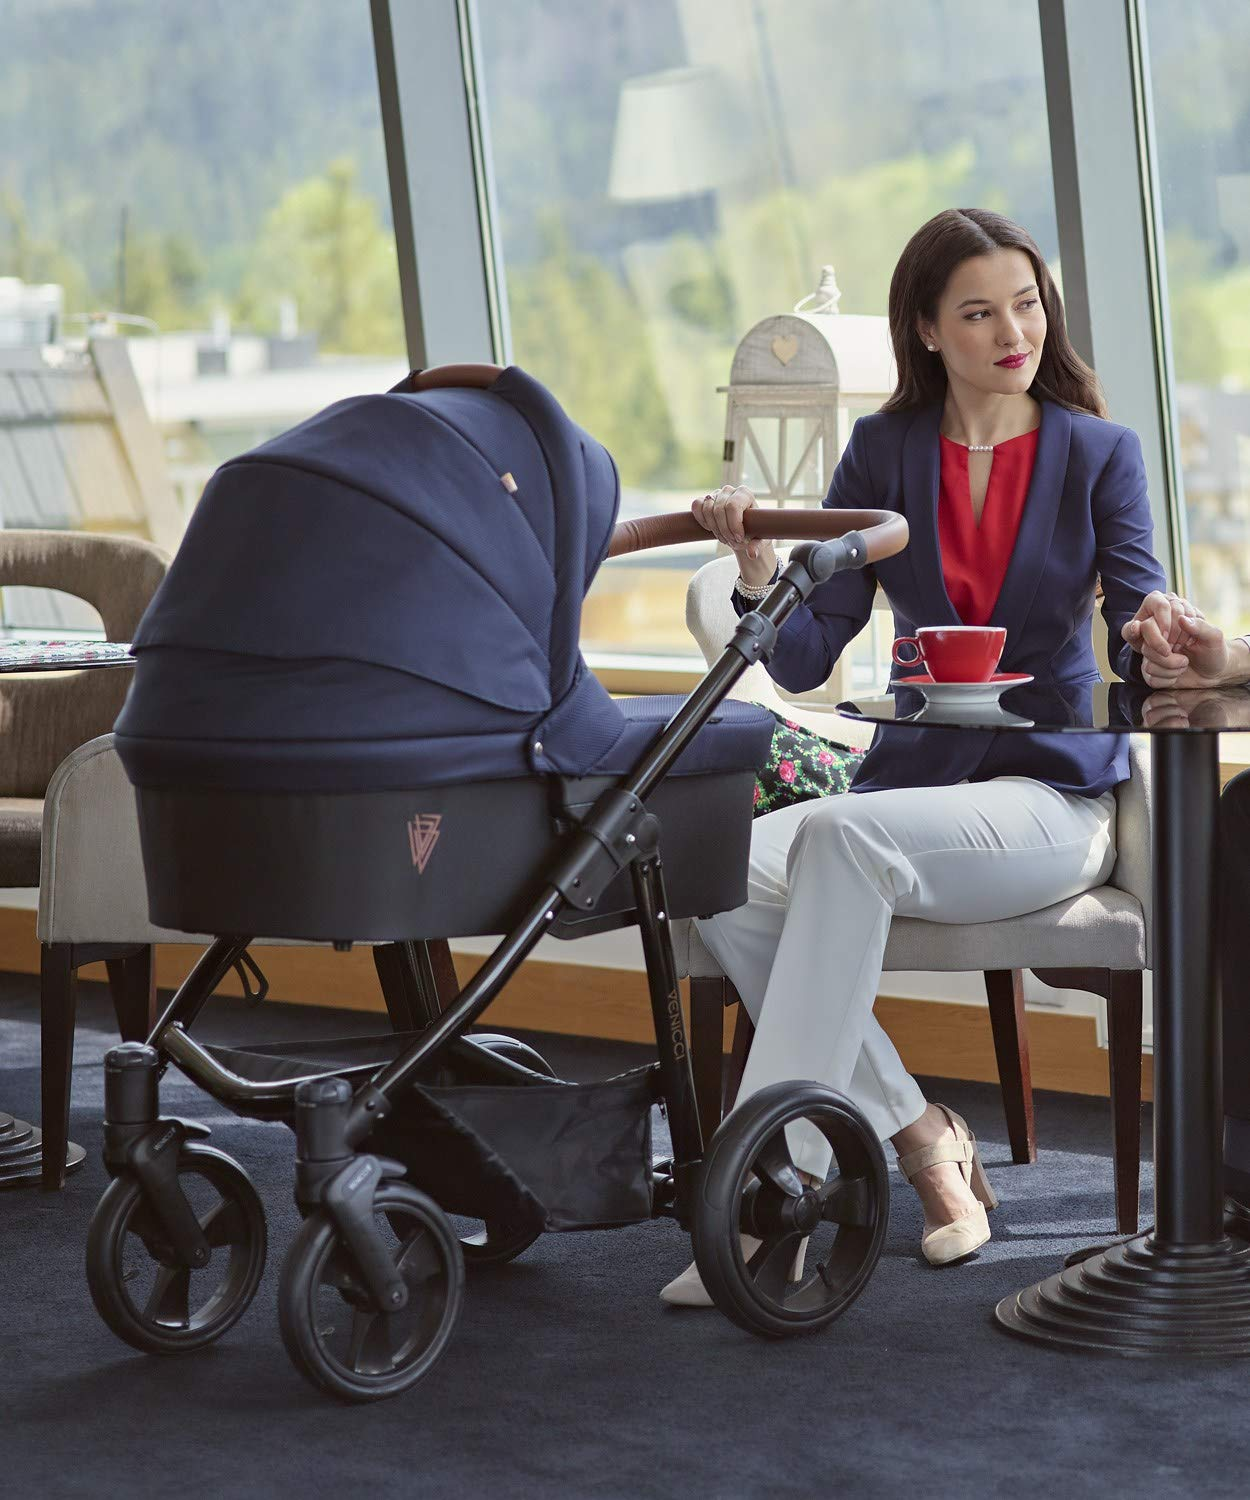 Venicci Gusto 3-in-1 Travel System - Navy - with Carrycot + Car Seat + Changing Bag + Footmuff + Raincover + Mosquito Net + 5-Point Harness and UV 50+ Fabric + Car Seat Adapters + Cup Holder  3 in 1 Travel System with included Group 0+ Car Seat Suitable for your baby from birth onwards 5-point harness to enhance the safety of your child 5